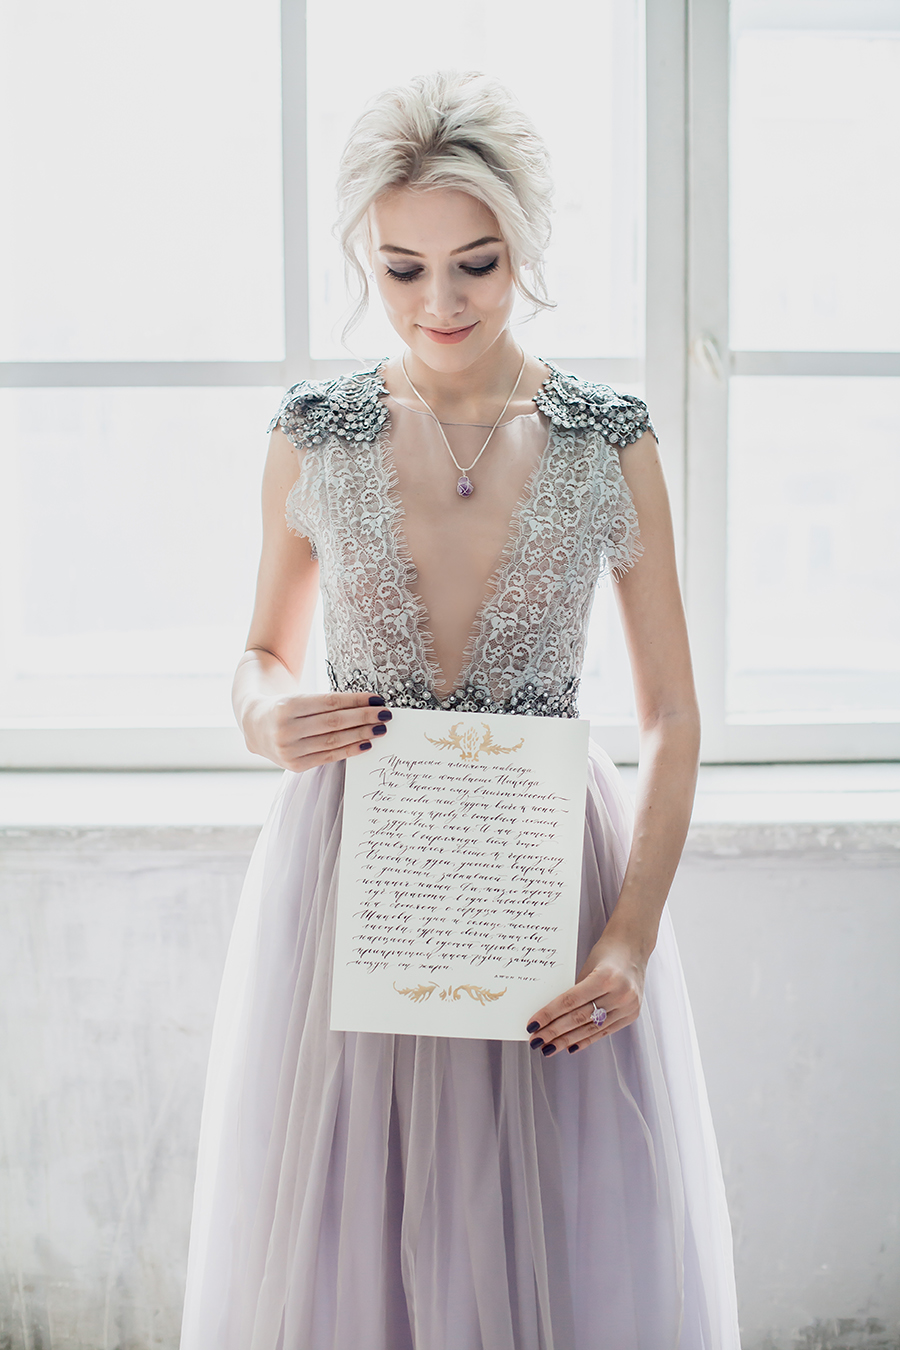 romantic winter wedding inspiration - bride holding marriage license